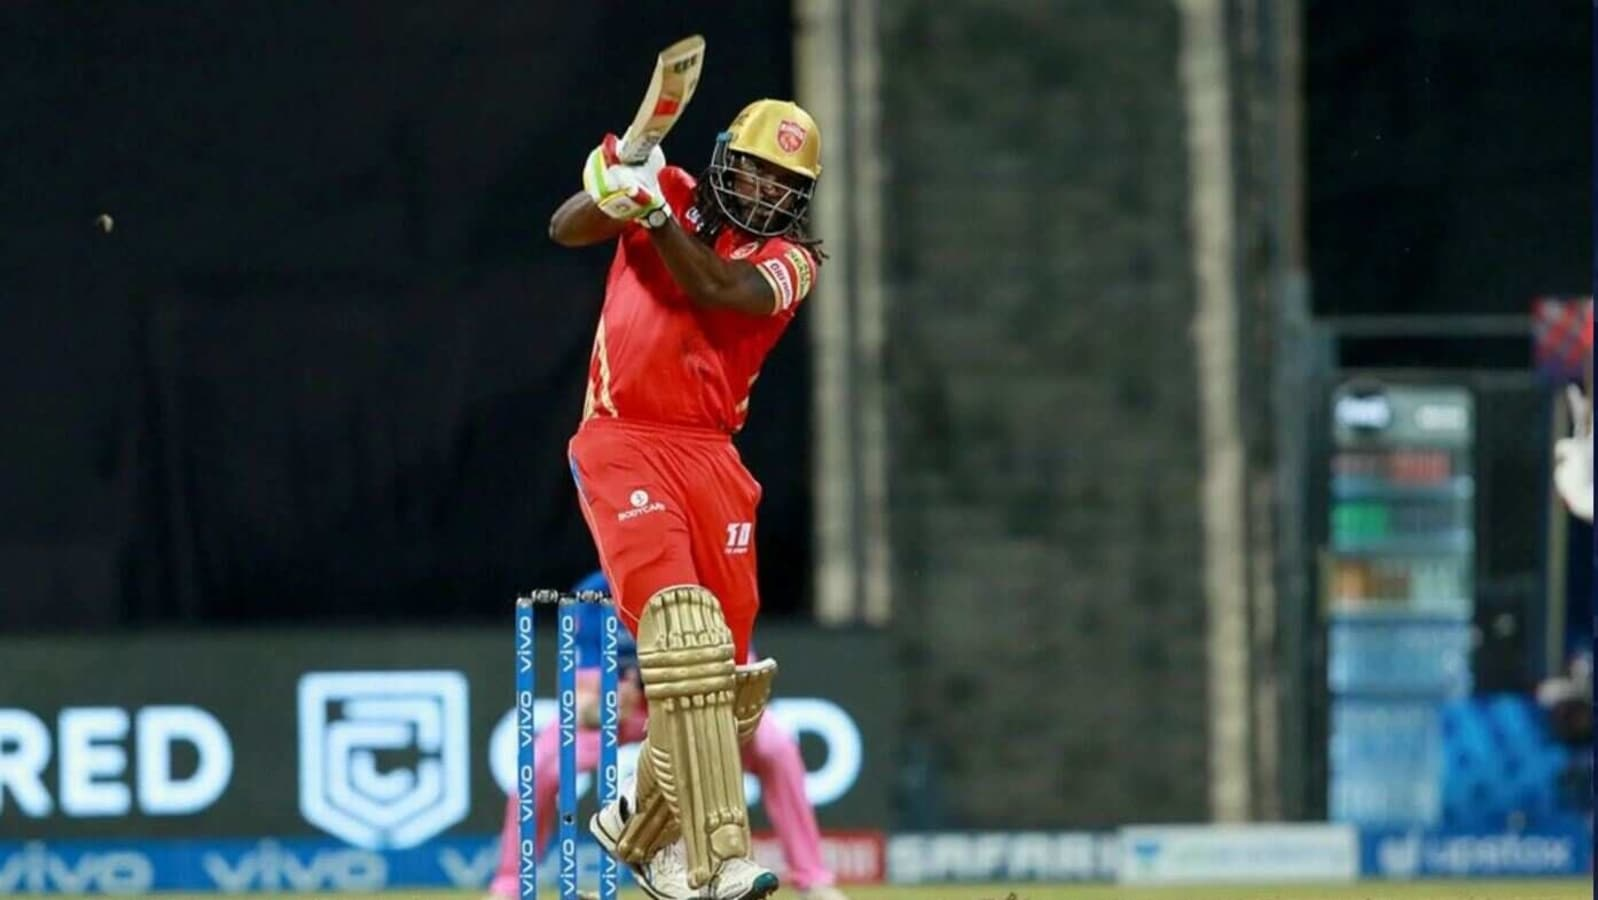 RR vs PBKS: Chris Gayle becomes only player to hit 350 sixes in IPL | Hindustan Times